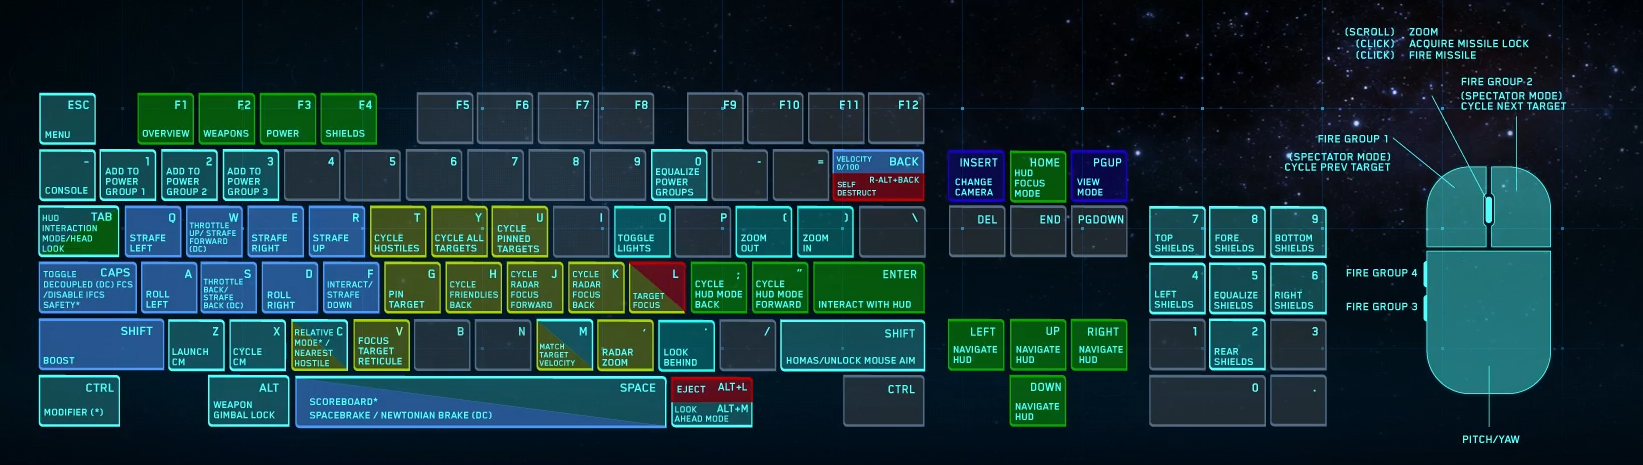 star citizen arena commander default control mappings